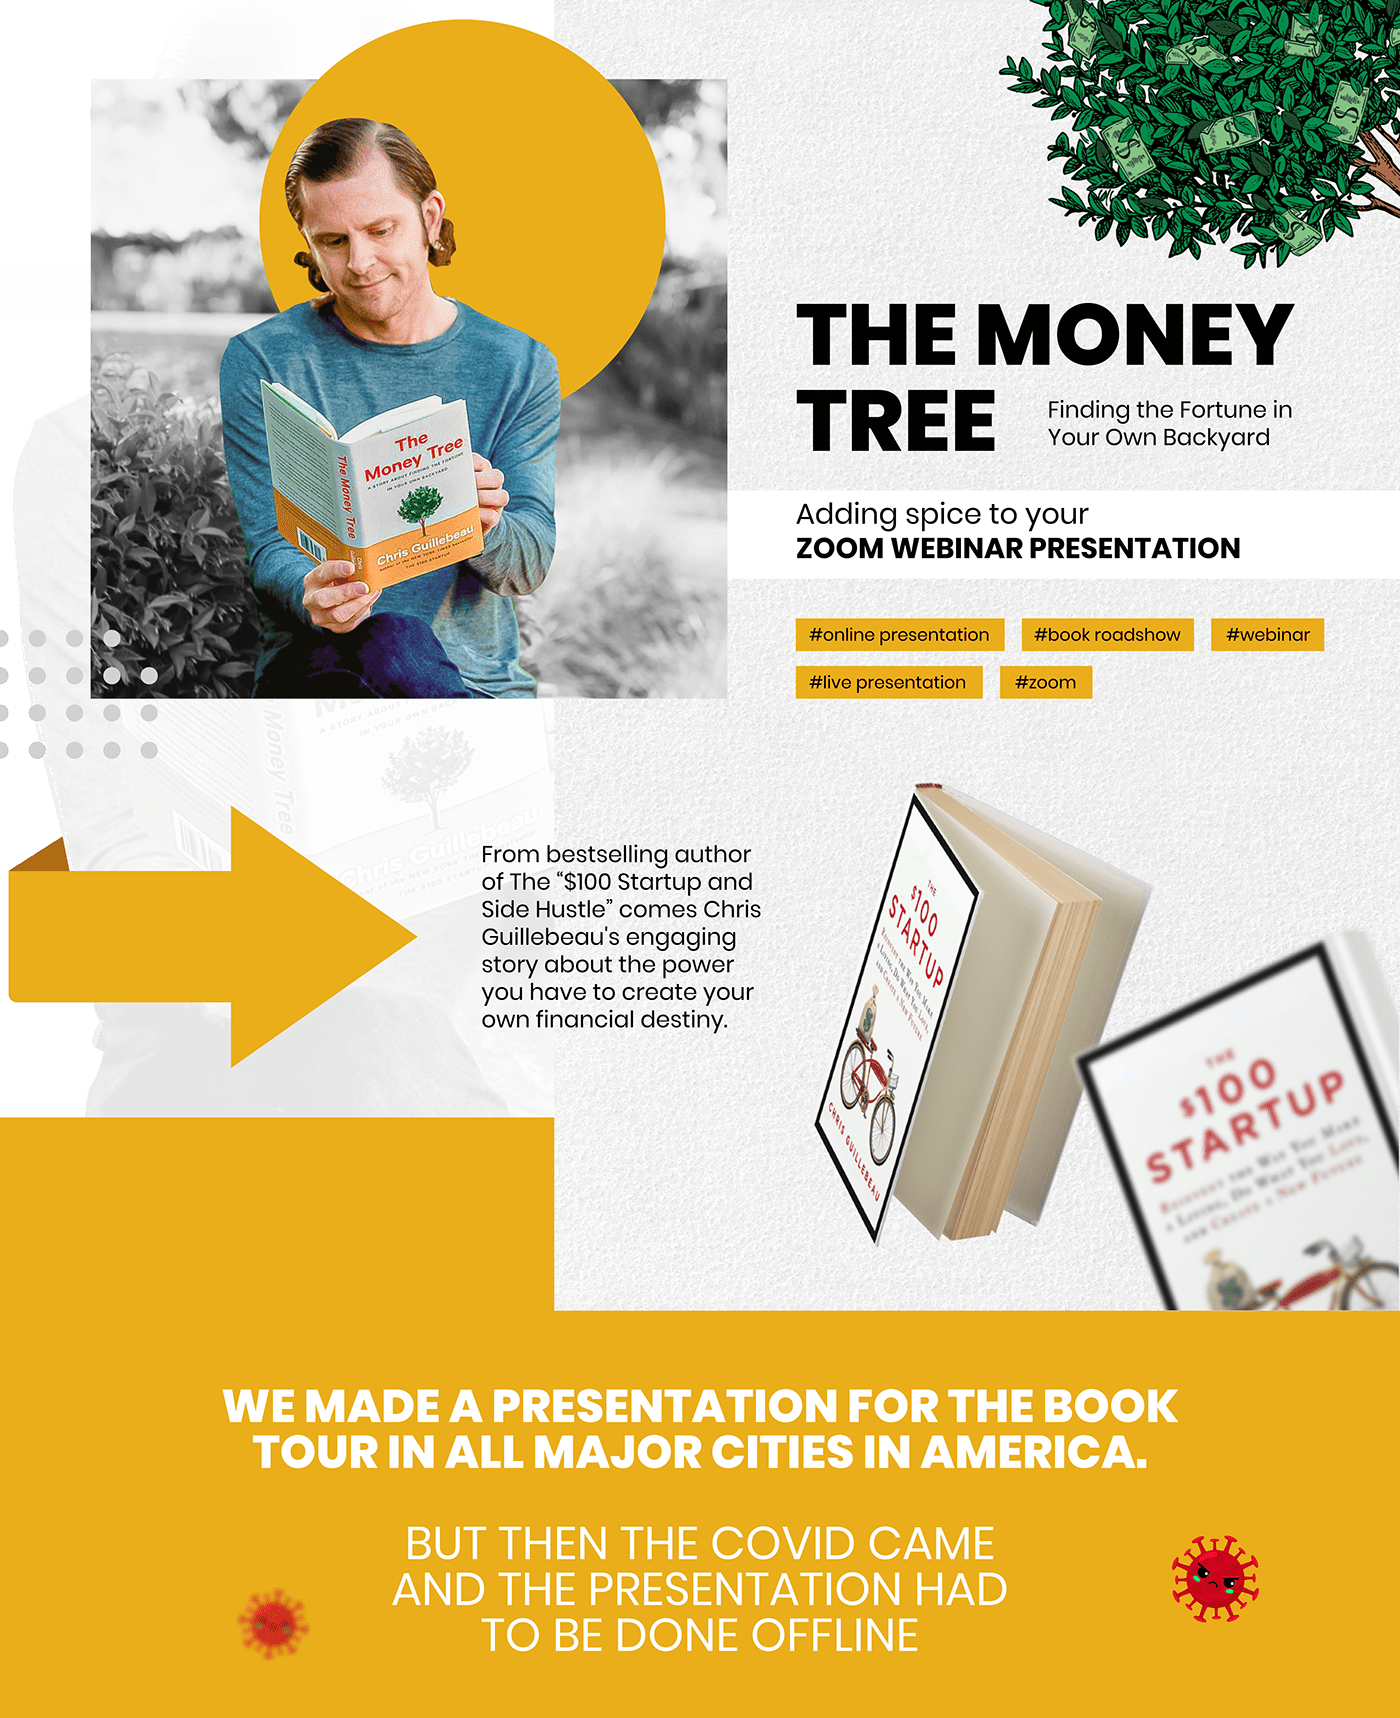 Chris Guillebeau,money tree,pitch deck,presentation